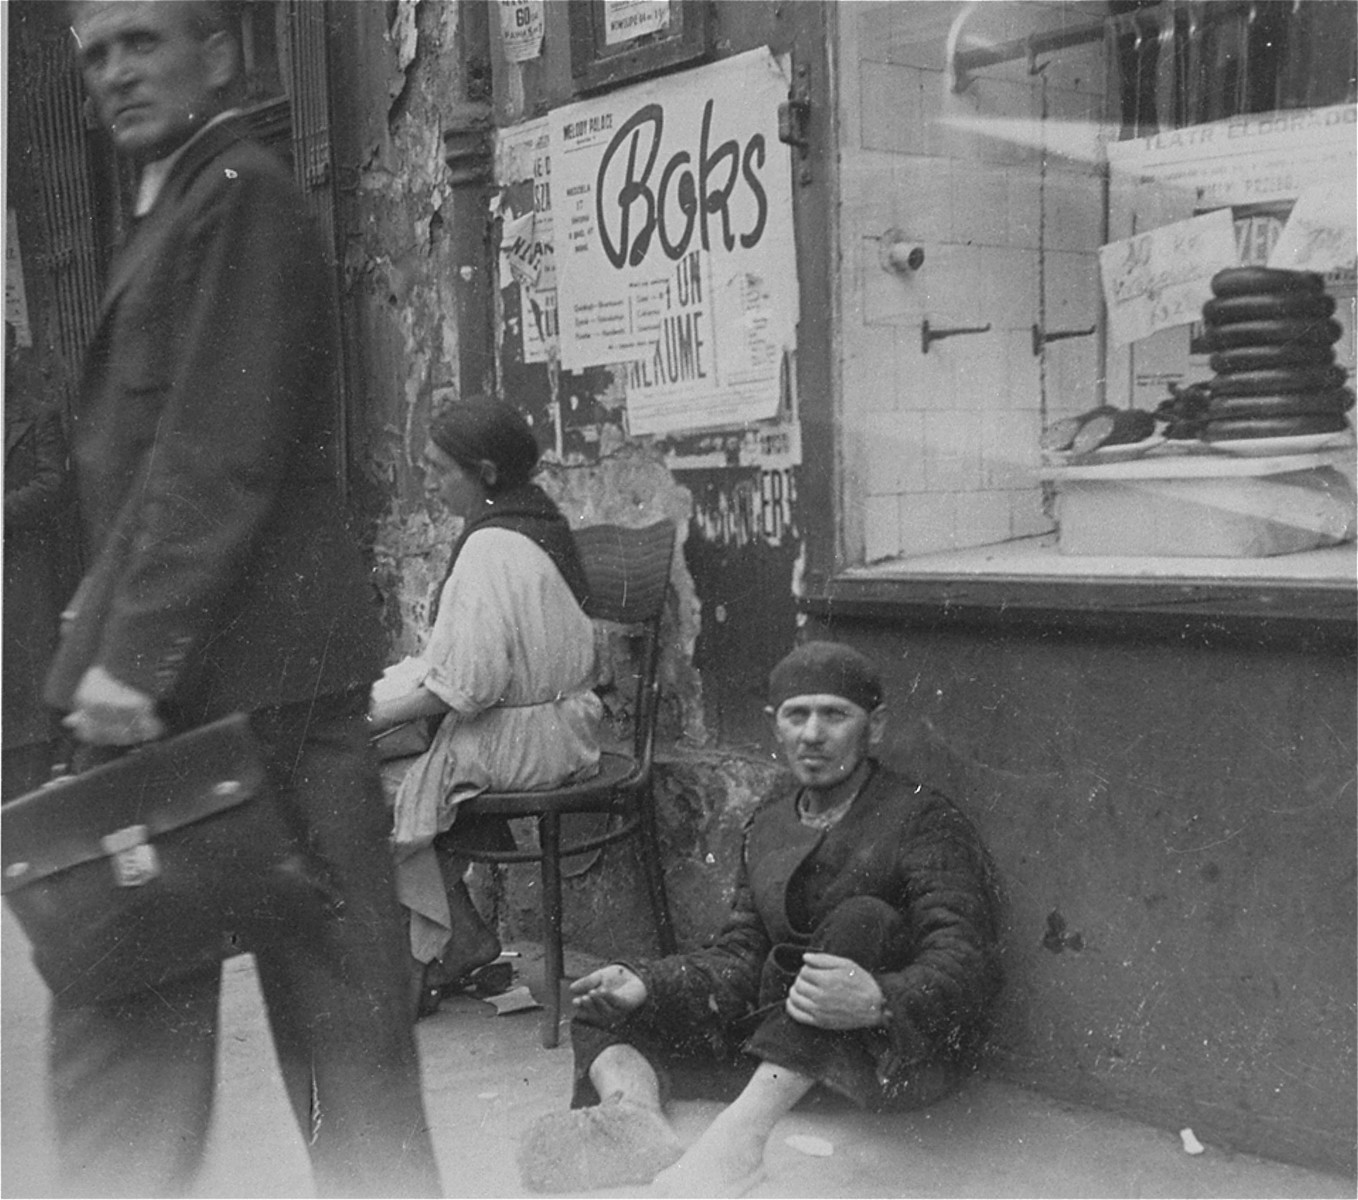 """A man begs for change or food while sitting in front of a butcher shop on Nowolipie Street in the Warsaw ghetto.  Joest's caption reads: """"It was incomprehensible, sausages were stacked in the display window of the butcher shop on Nowolipie Street , and in front of them sat a hungry beggar."""""""